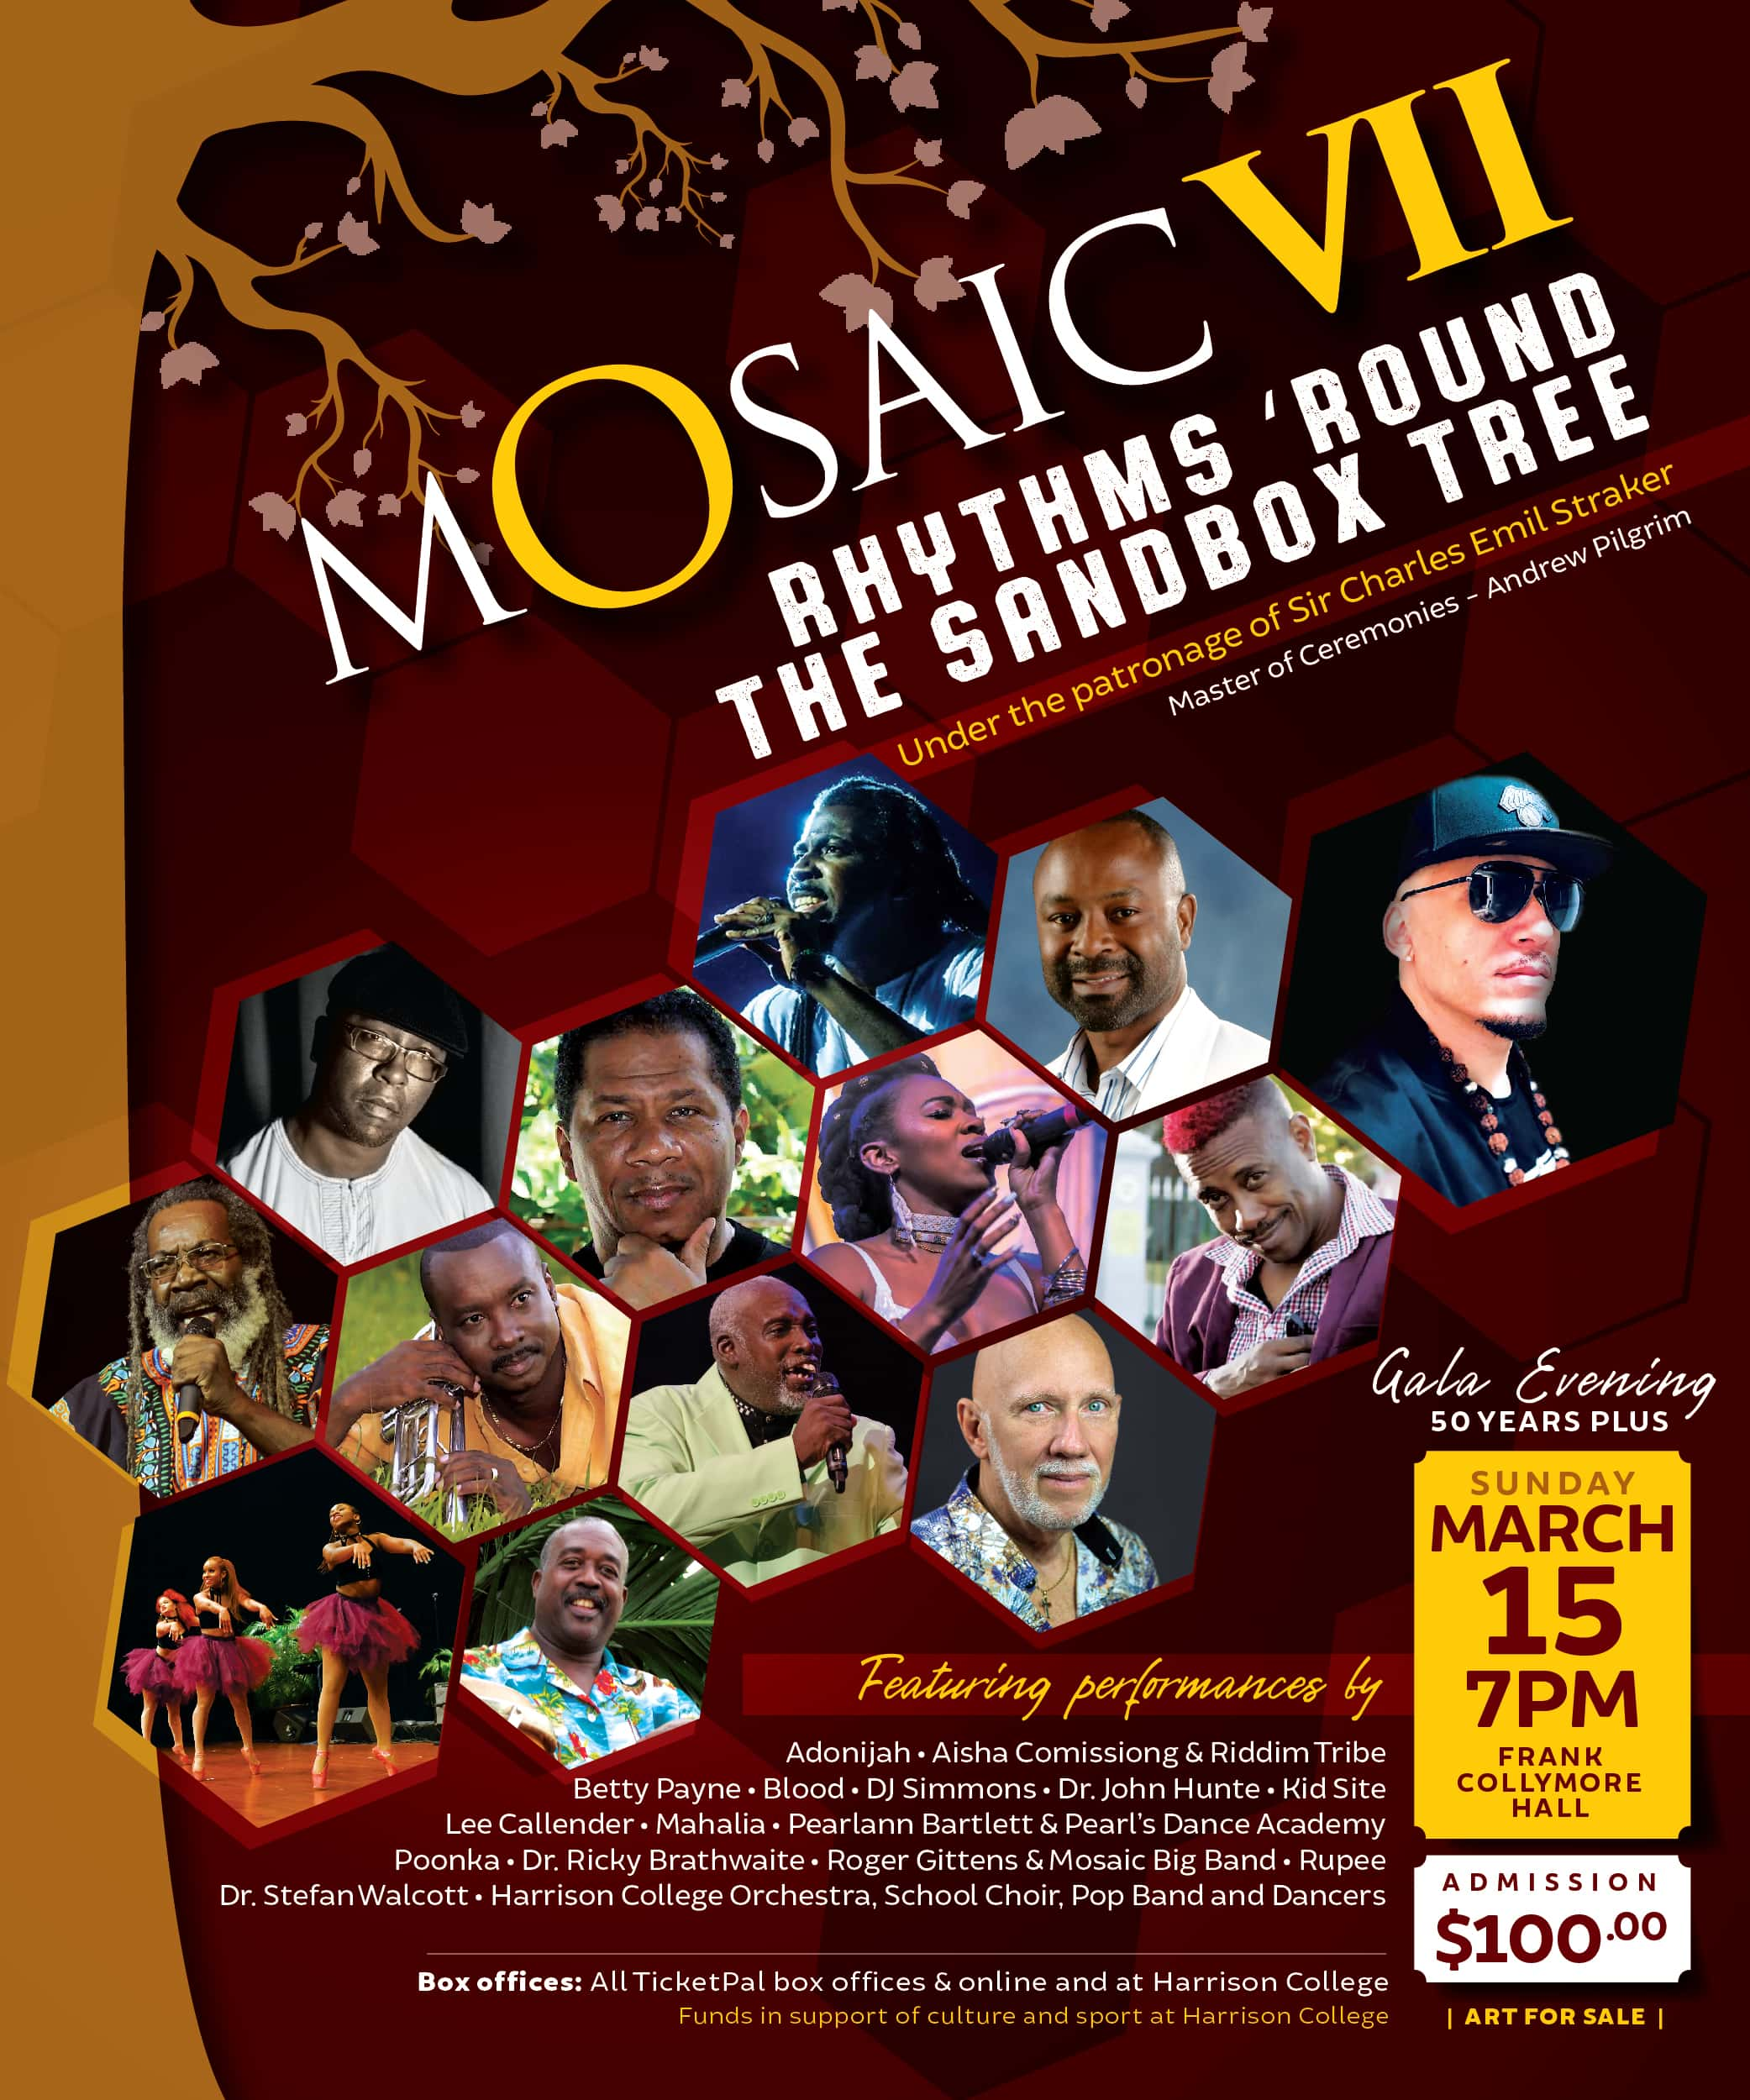 Mosaic VII: Rhythms 'Round the Sandbox Tree - Gala